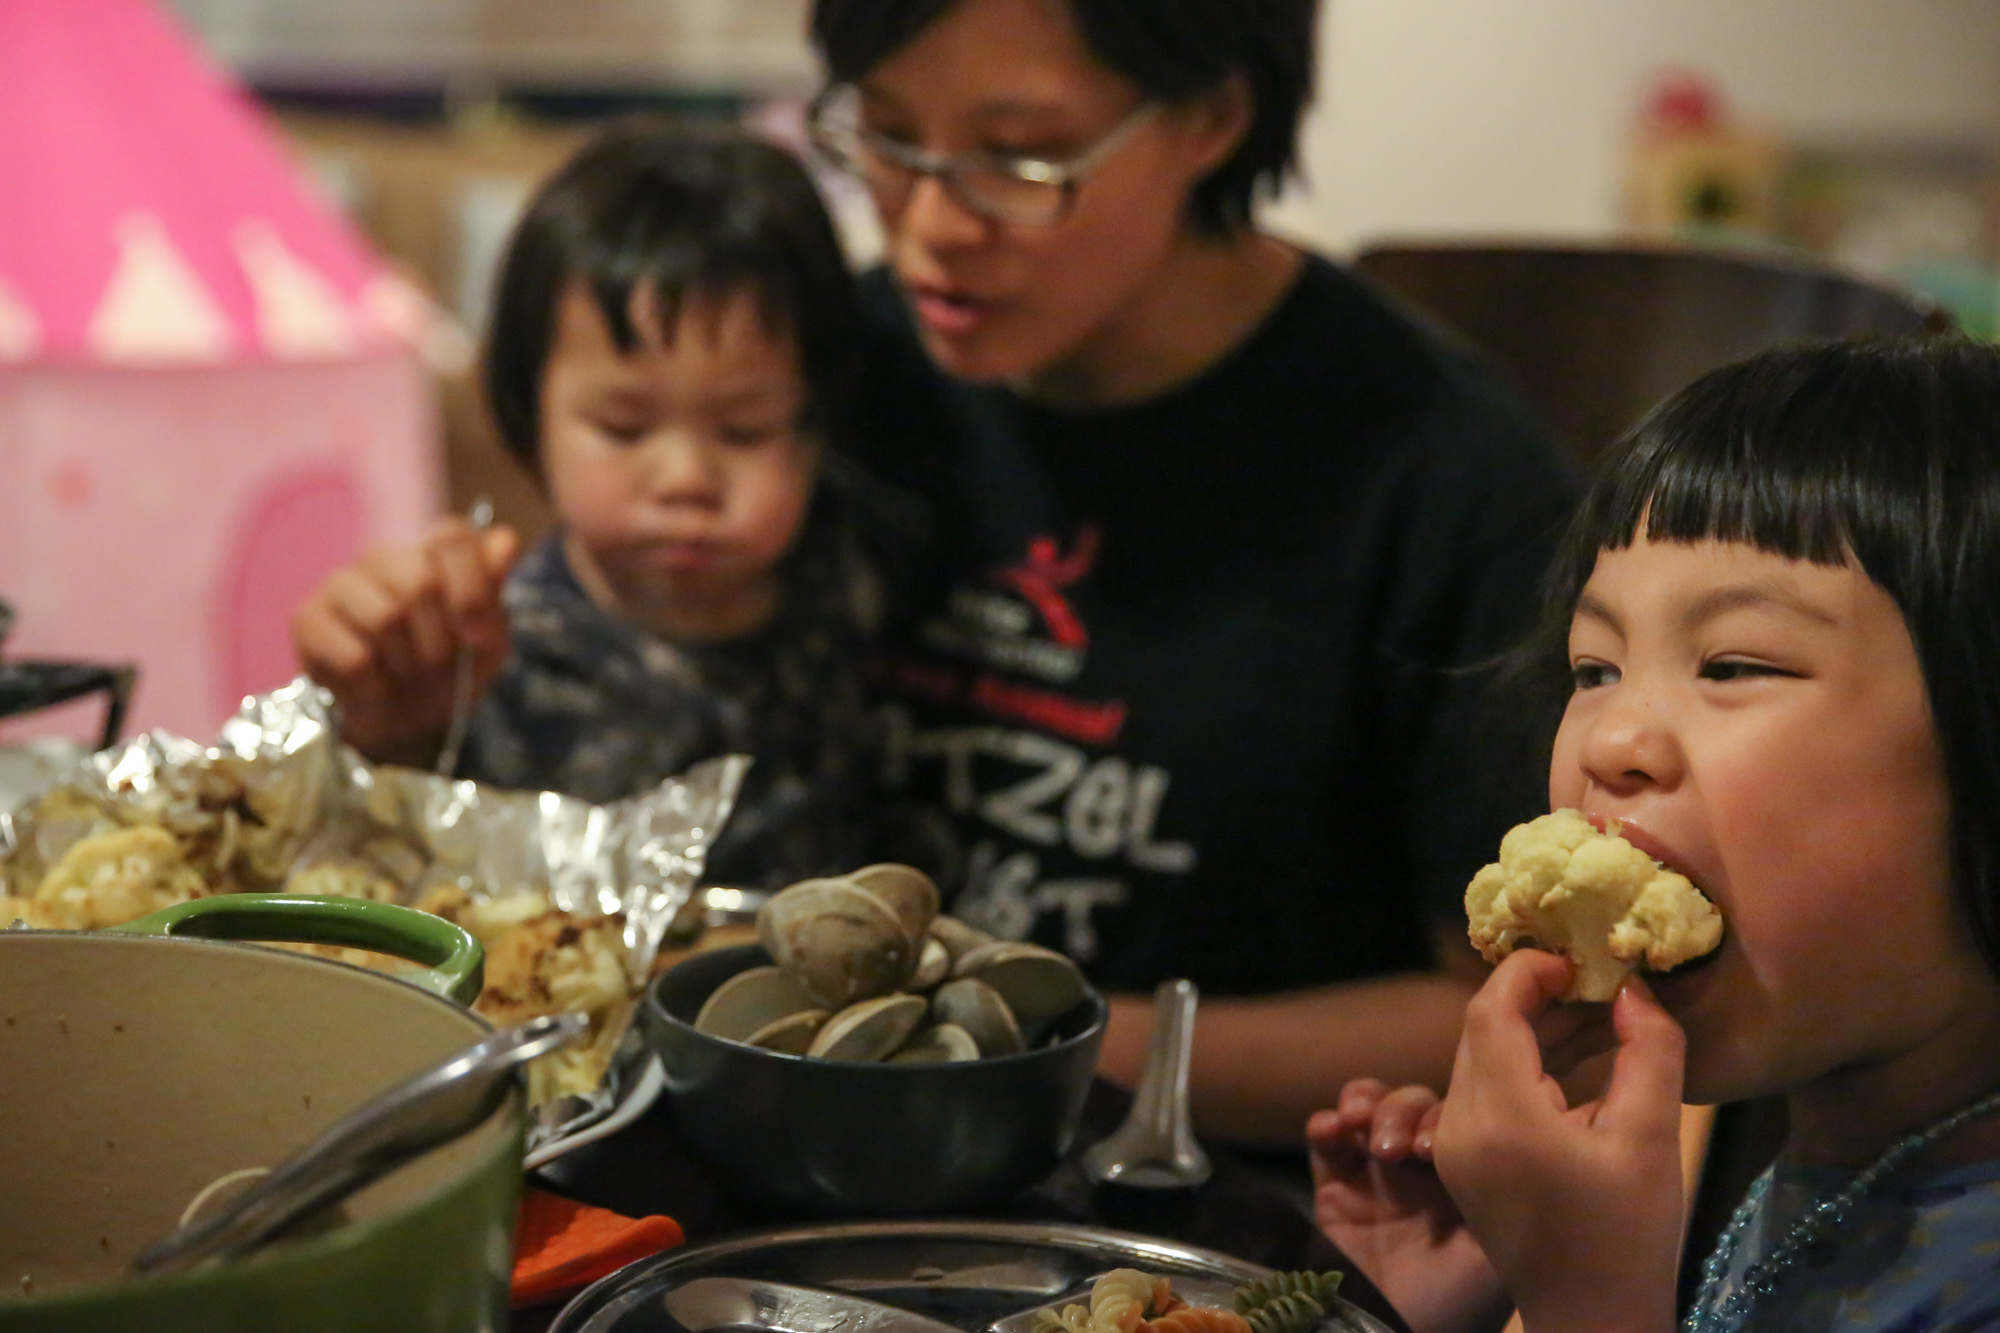 Girl takes a big bite of cauliflower with her hand. Woman sits with girl in background with a bowl of clams